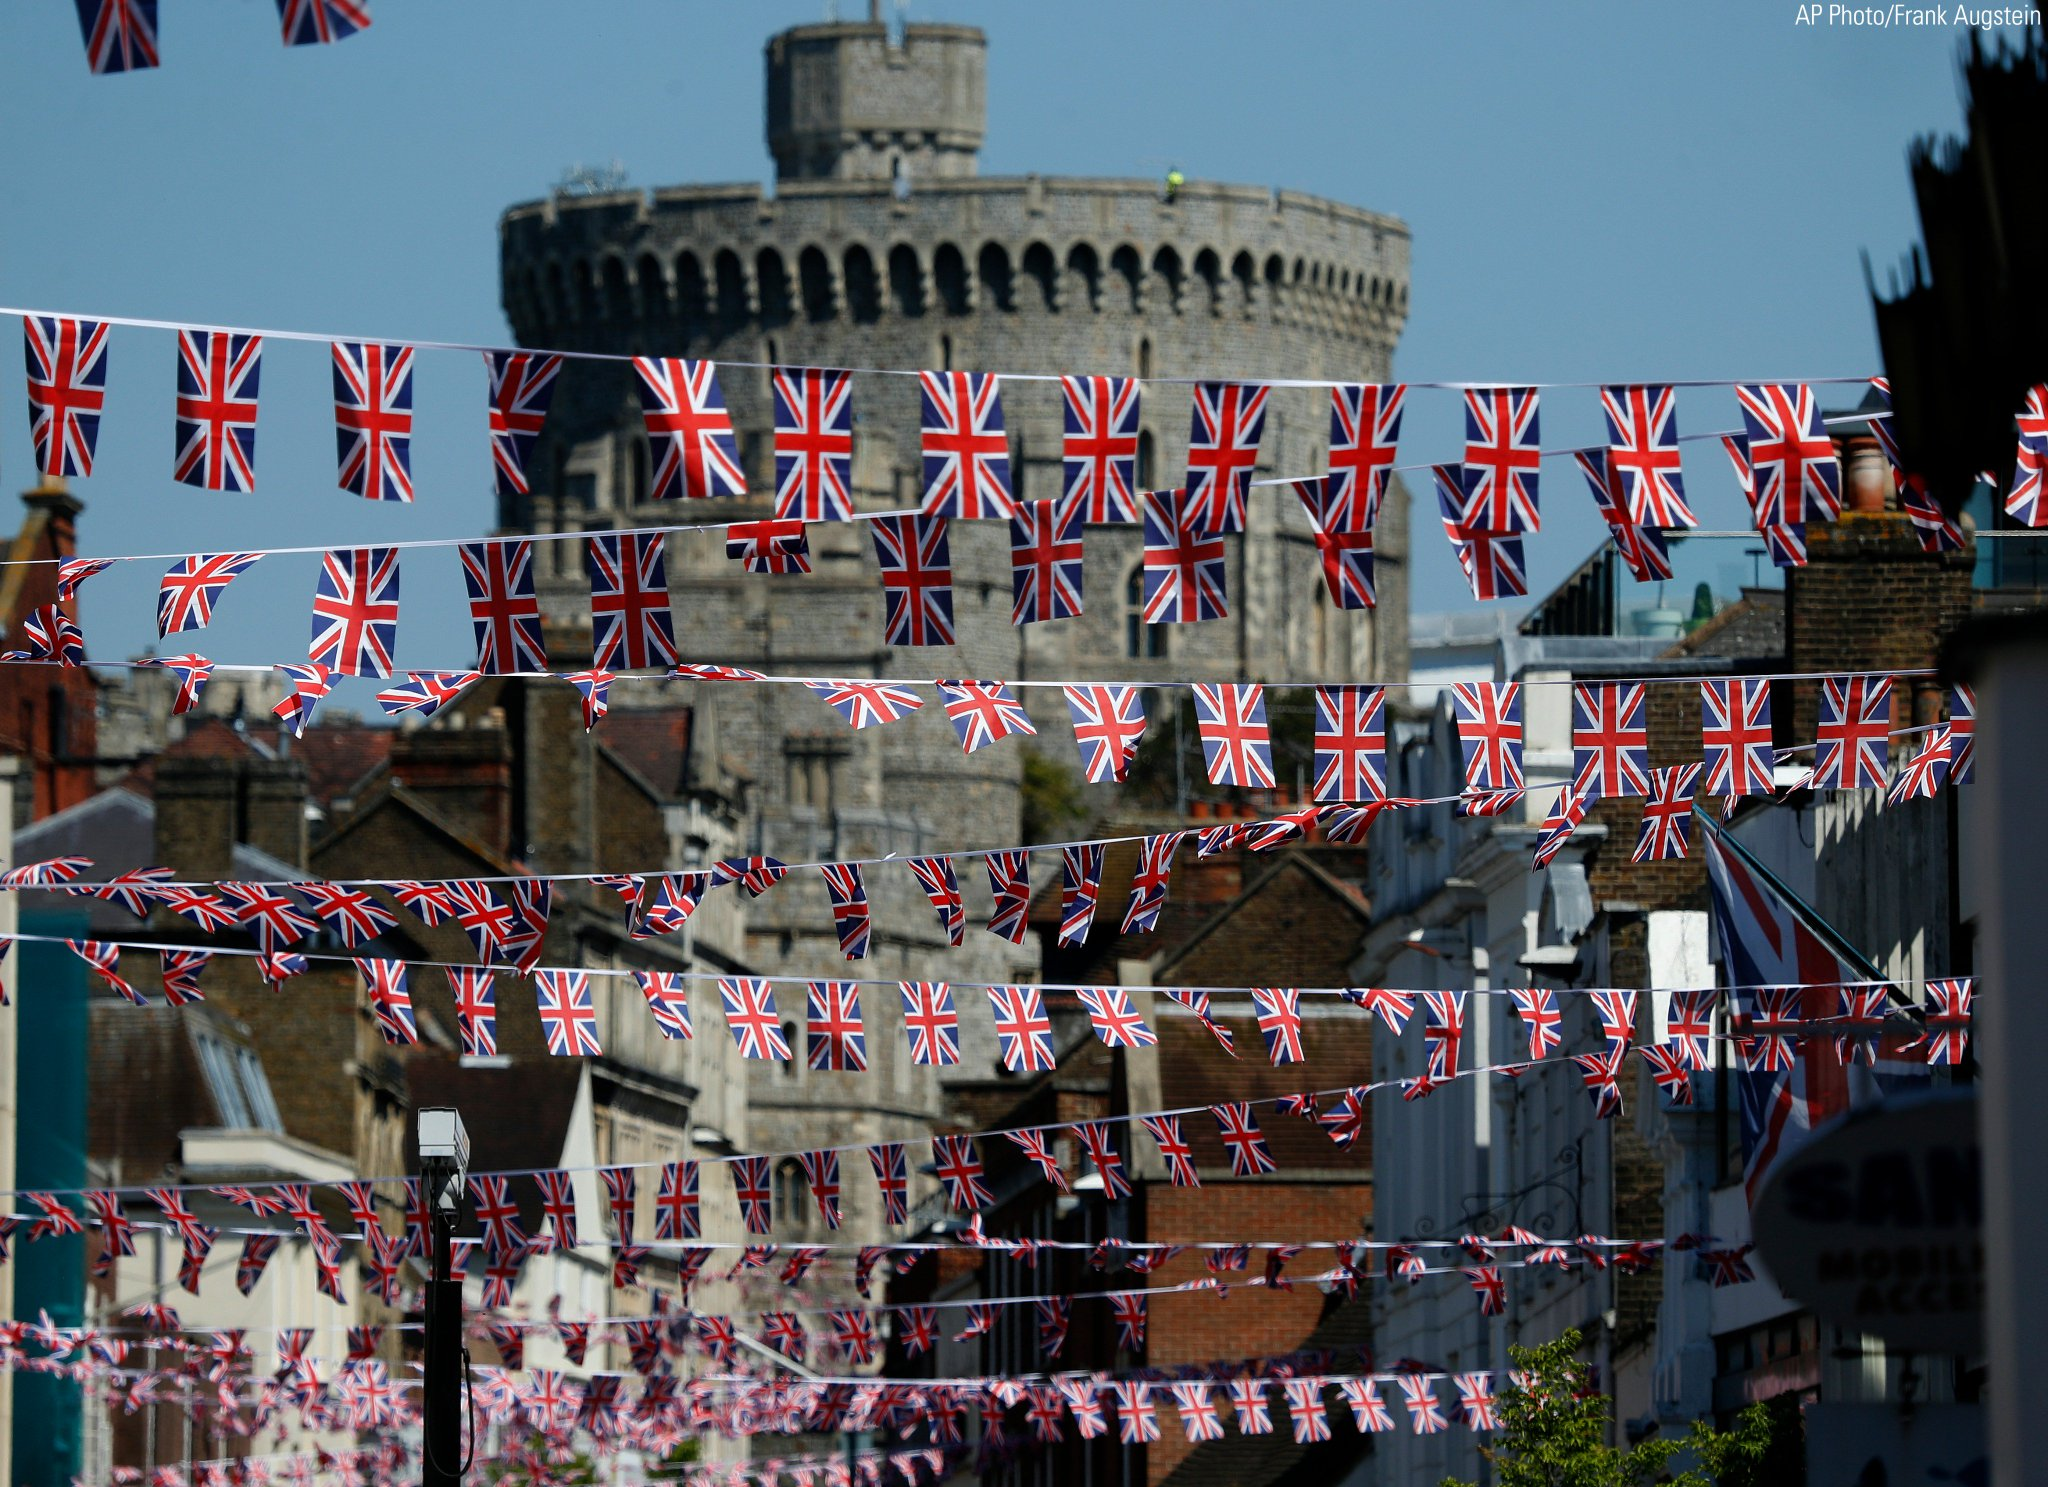 Union Jack flags fly across the main shopping street in Windsor ahead of the #RoyalWedding https://t.co/4NSnH3sjbZ